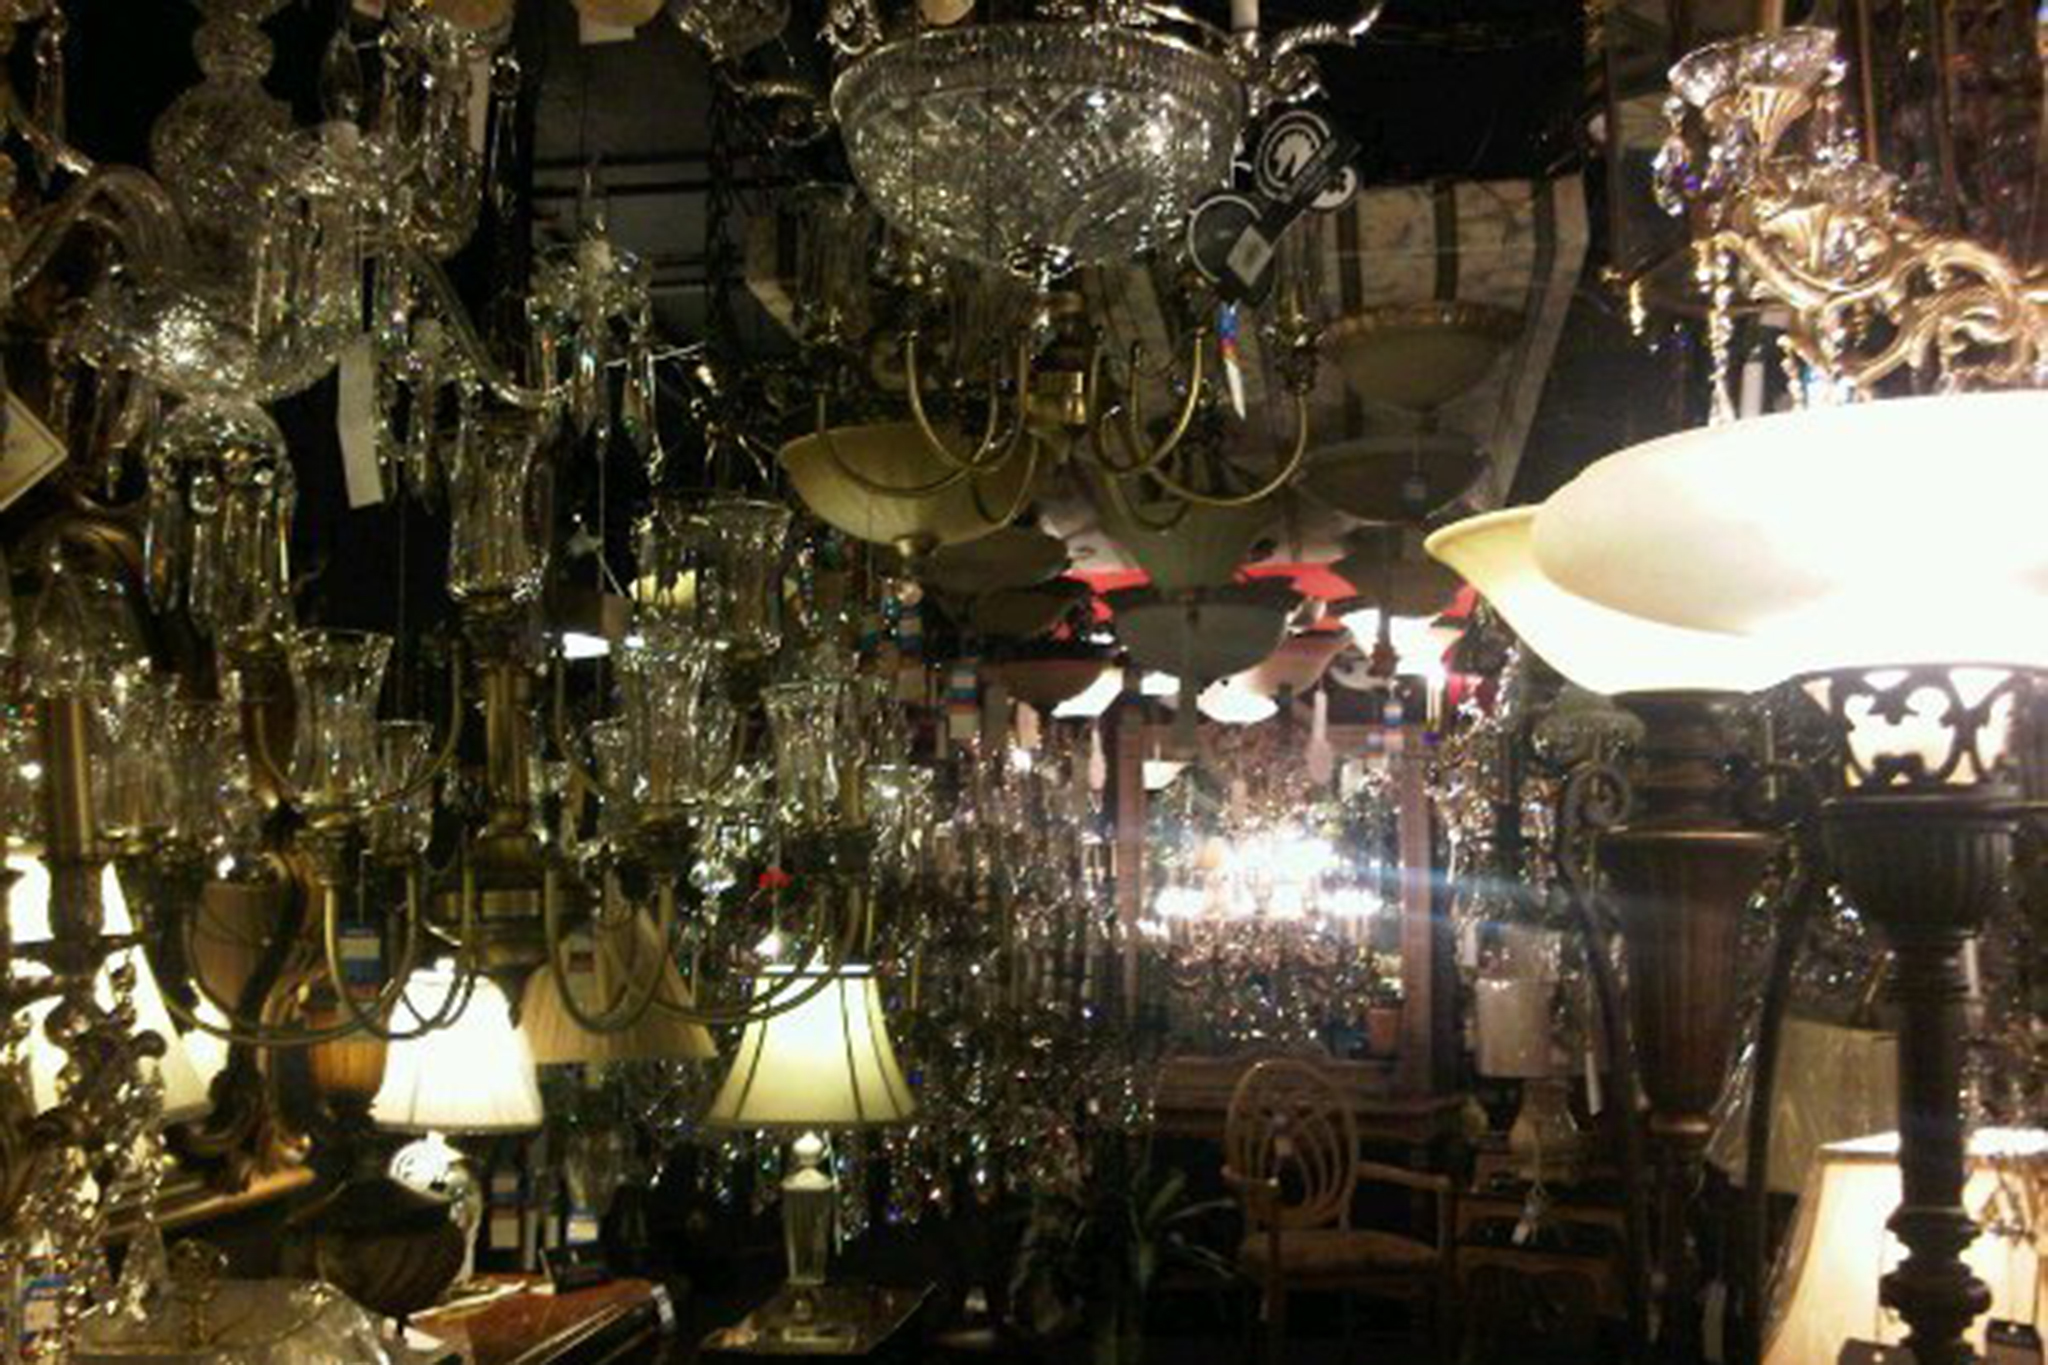 Best lighting stores in nyc for lamps bulbs and home decor the light house arubaitofo Gallery